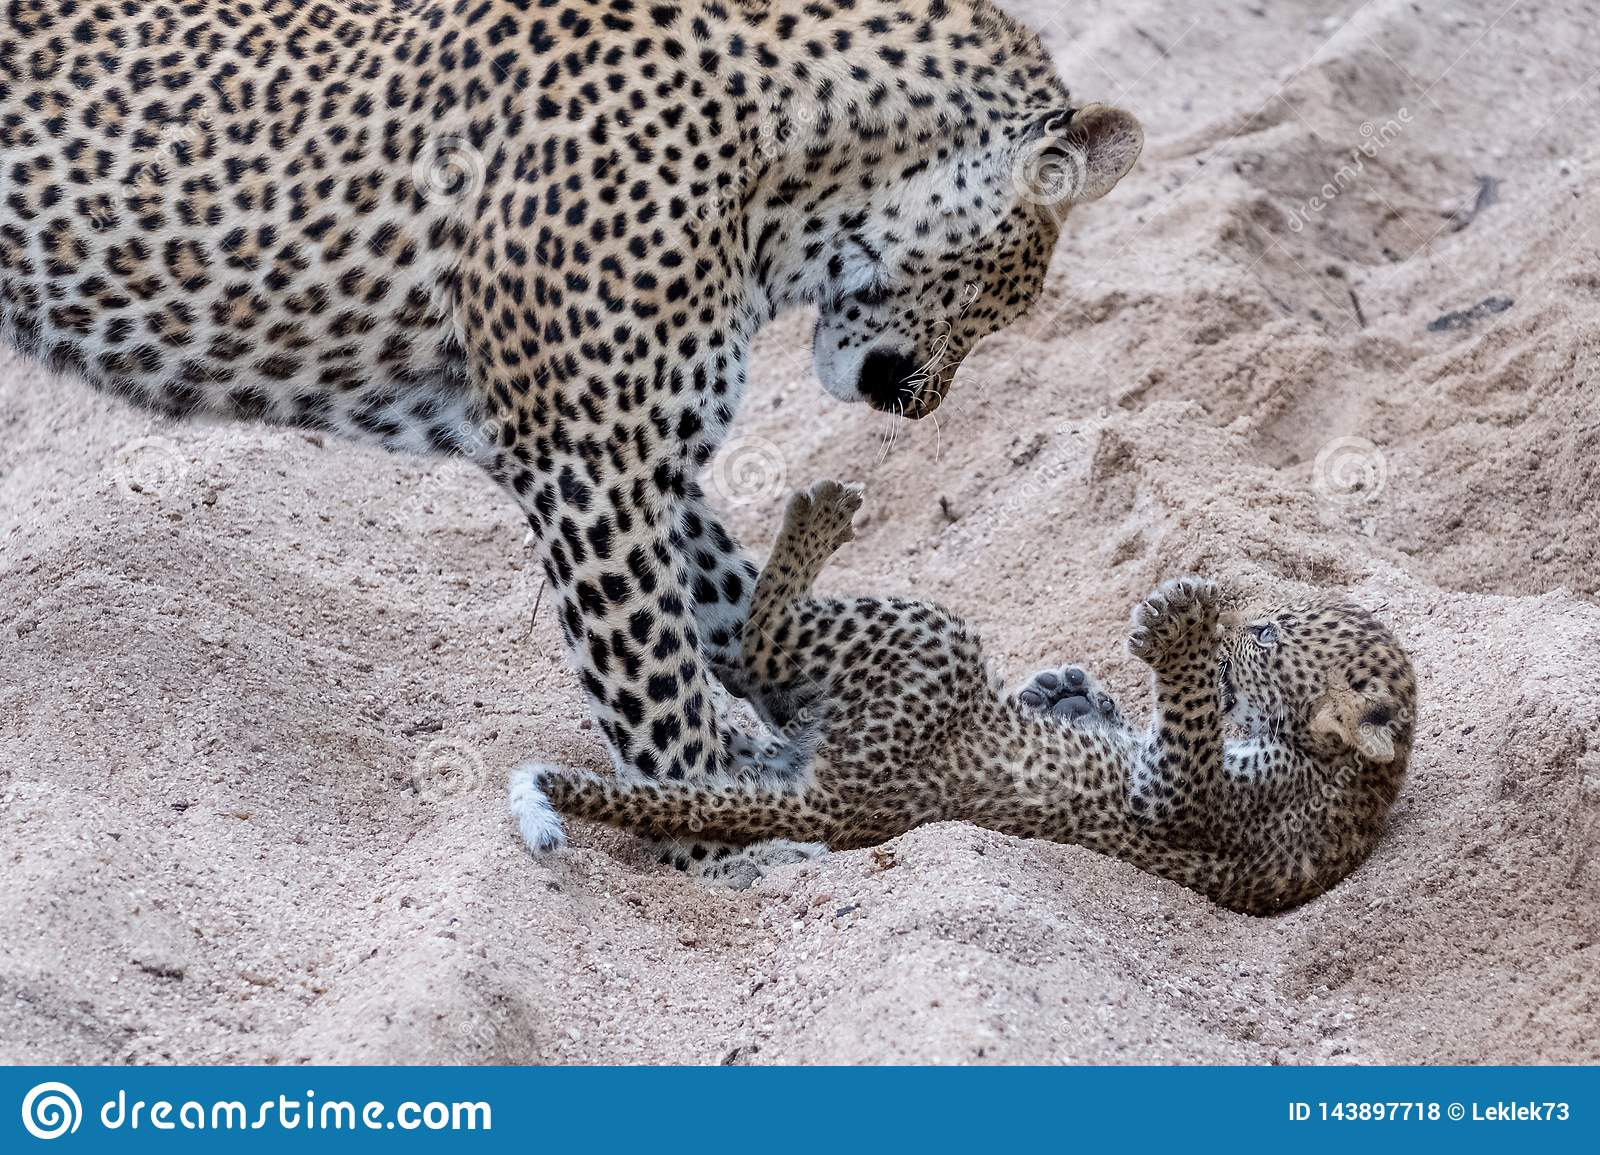 Adult female leopard and cub playing harmlessly in the sand at Sabi Sands safari park, Kruger, South Africa